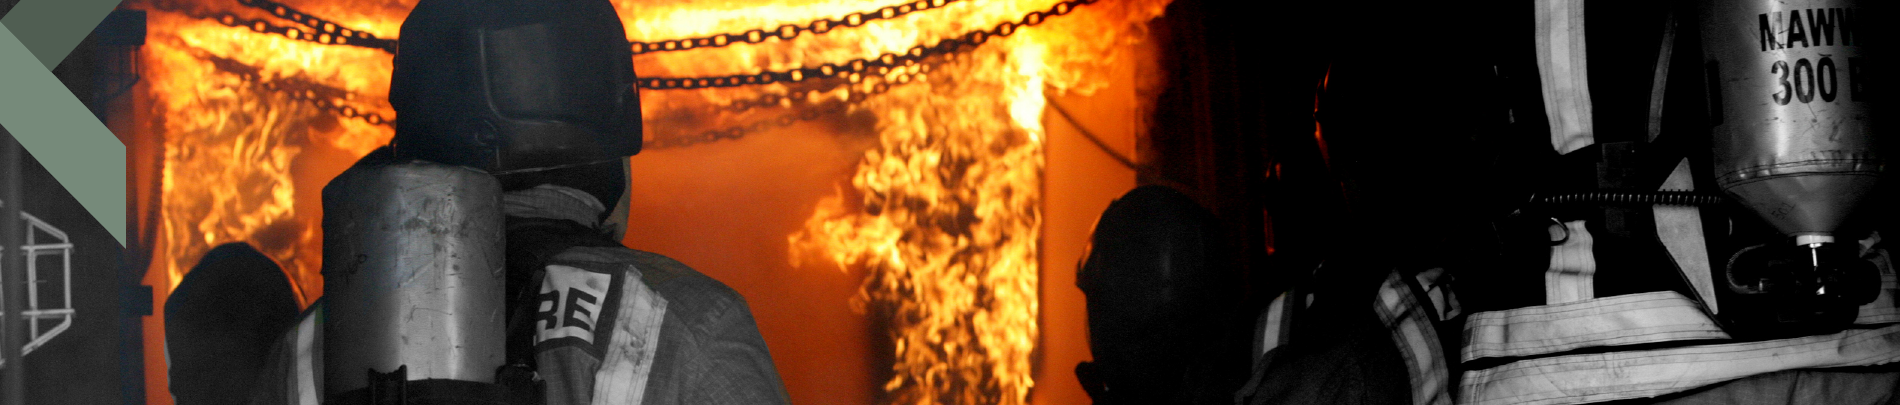 Firefighter battling flames during an excercise